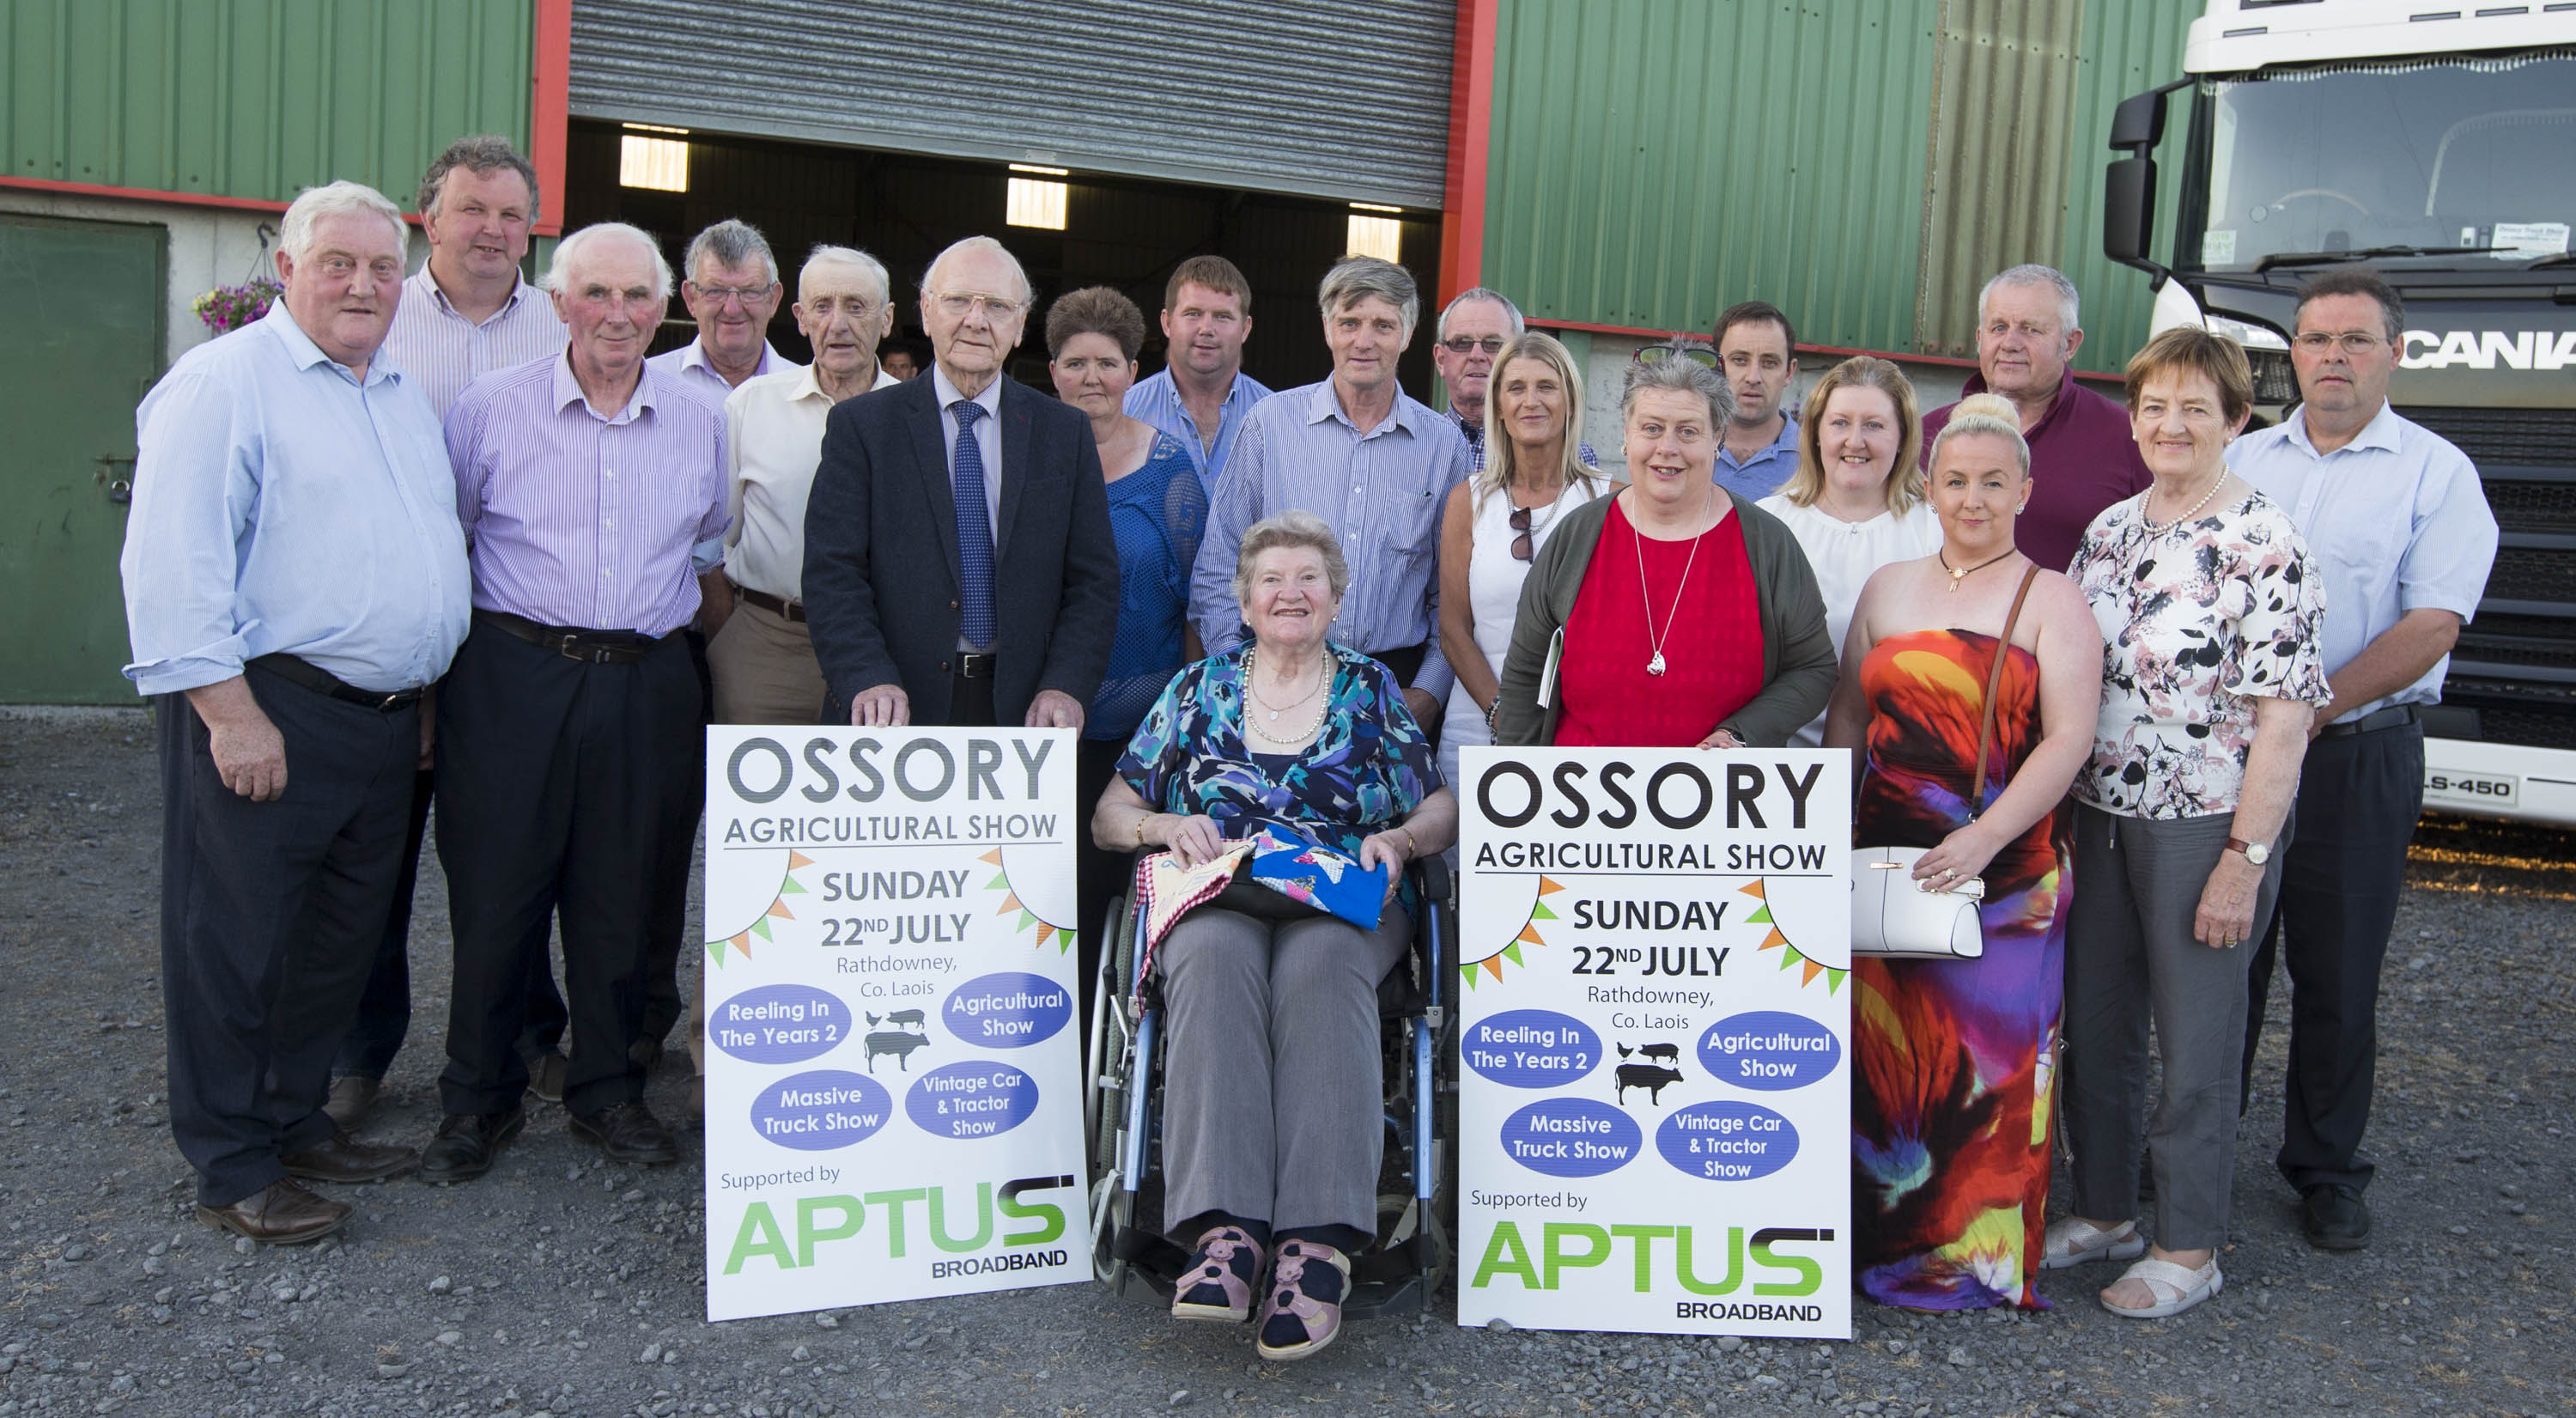 Ossory Show marks 120th year with busy programme